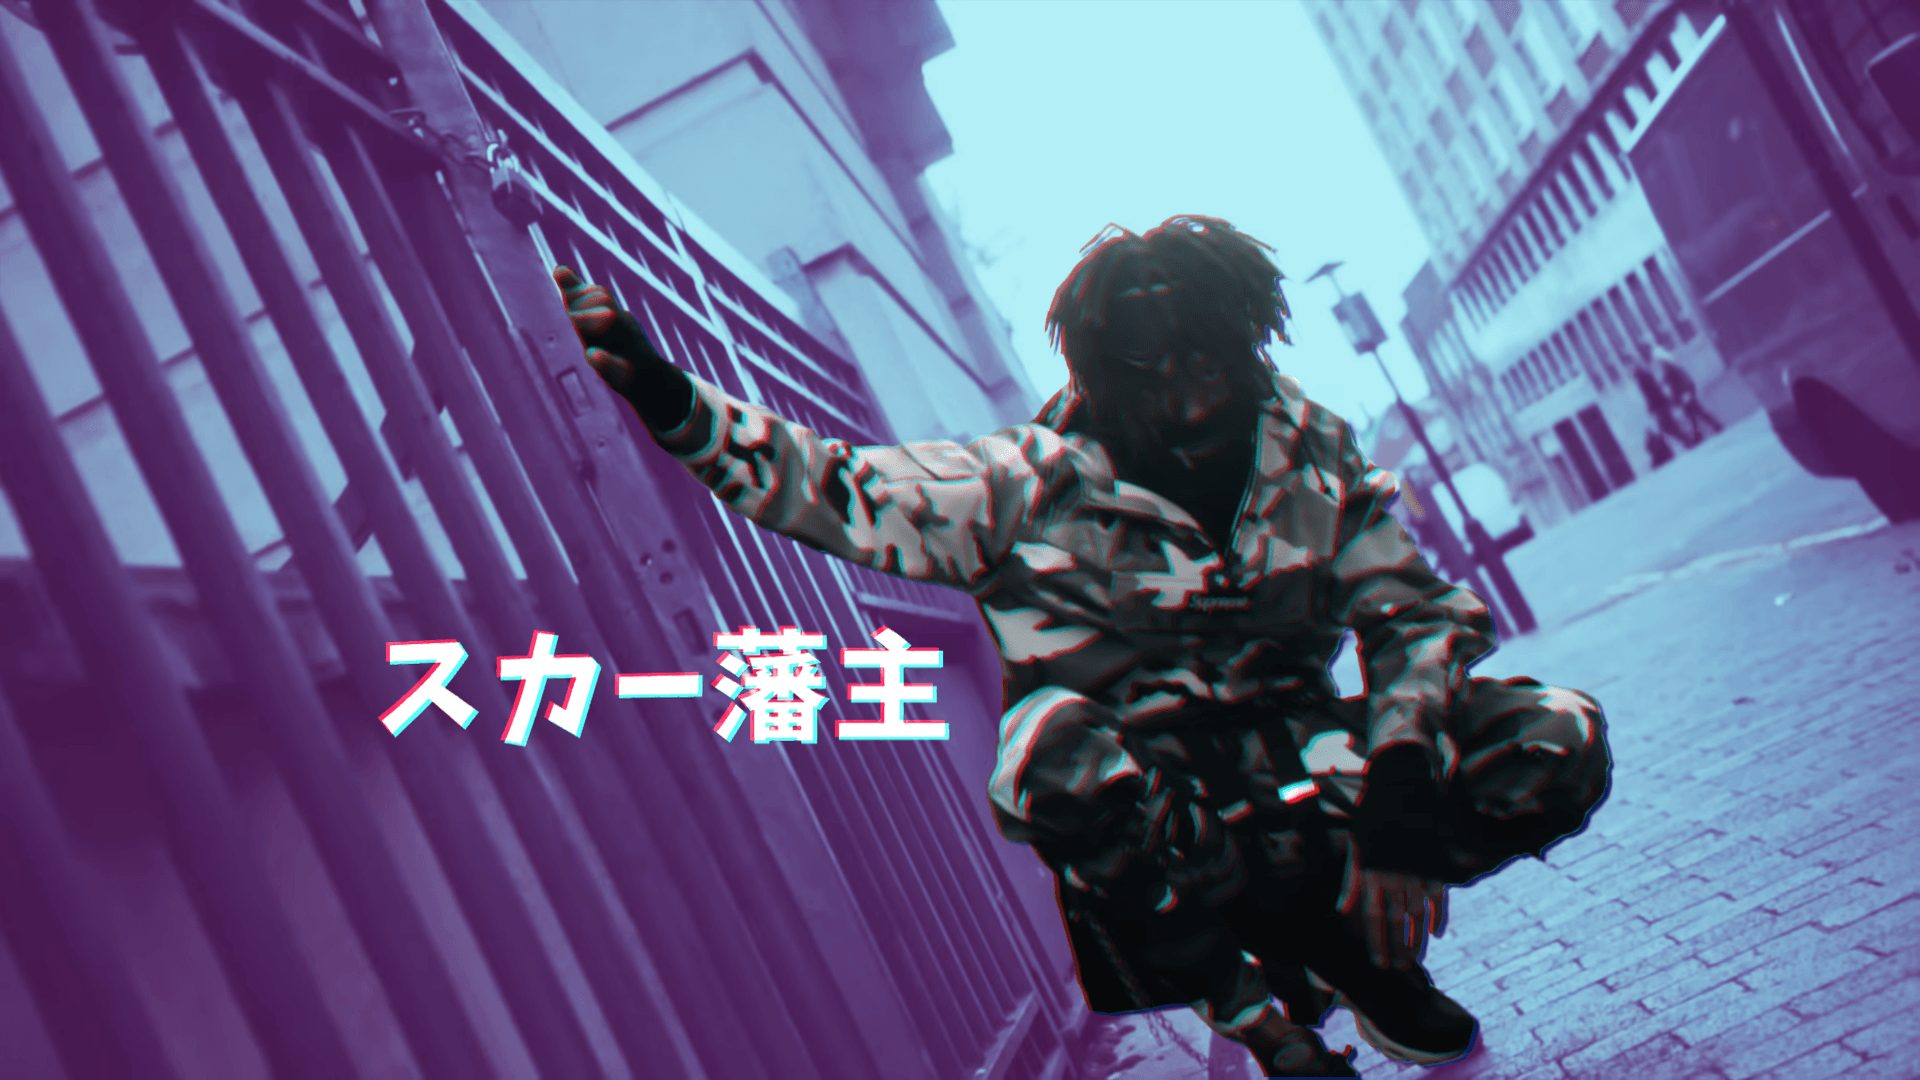 1920x1080 Wallpaper i made from HXW THEY JUDGE videoclip : scarlxrd